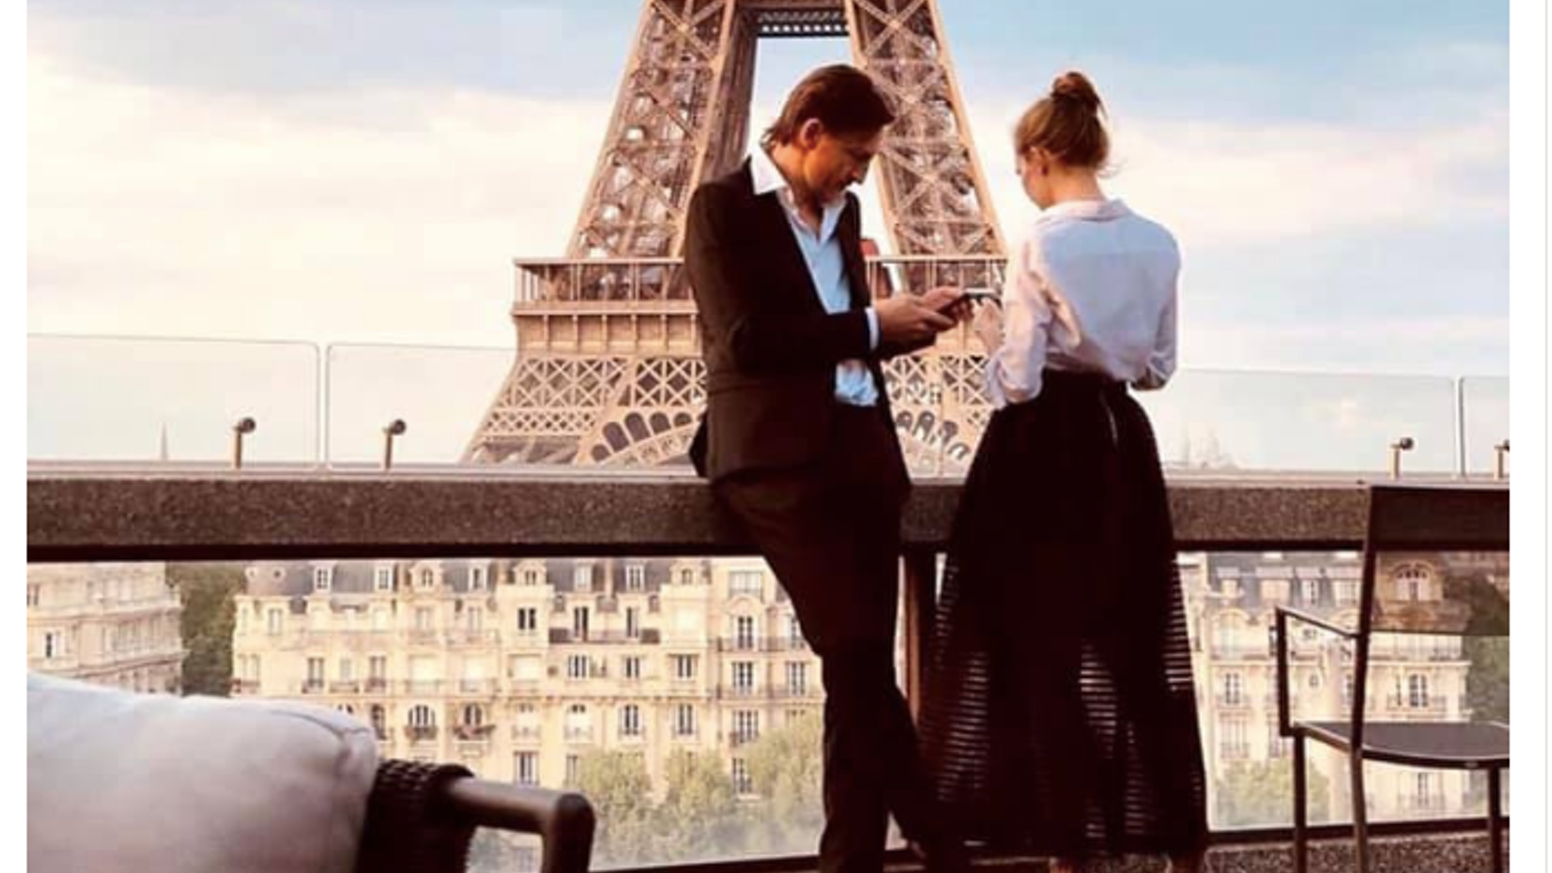 A Paris memoir from the host of The Earful Tower podcast. Thanks to all who contributed! If you missed the Kickstarter campaign, pre-order a copy on the blue button below!